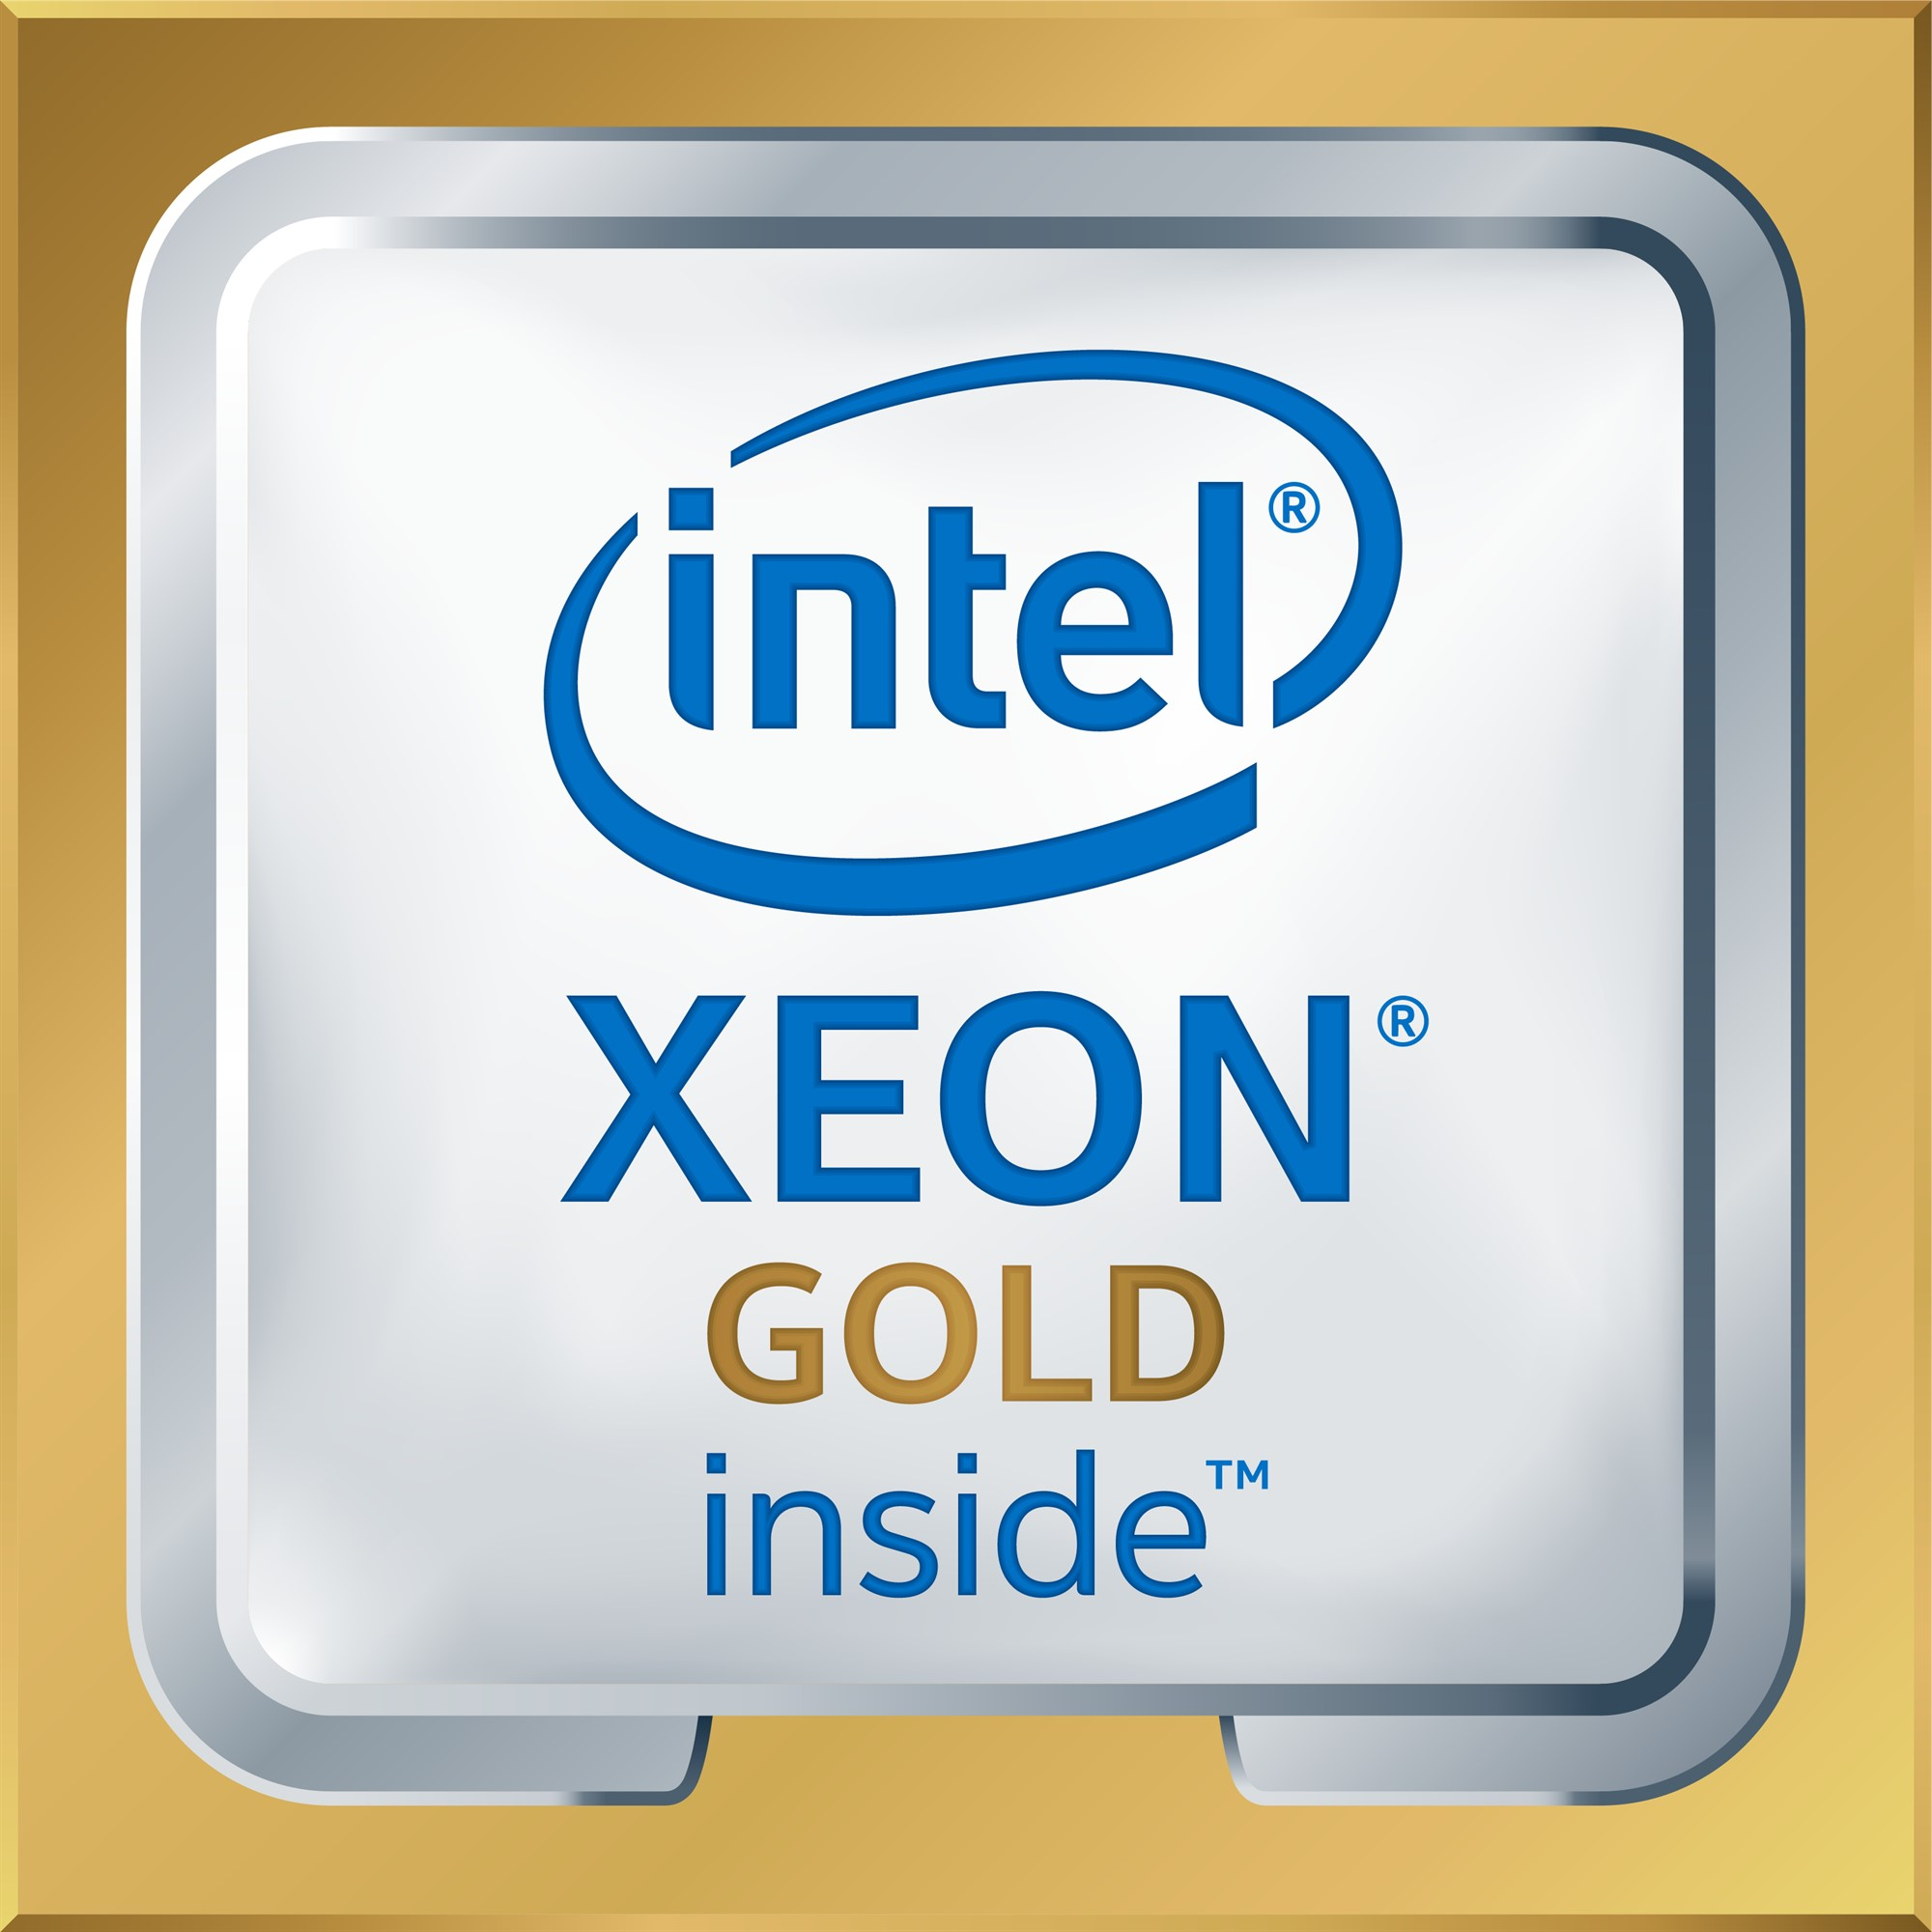 INTEL CD8067303405900 XEON GOLD 6126 PROCESSOR (19.25M CACHE, 2.60 GHZ) 2.60GHZ 19.3MB L3